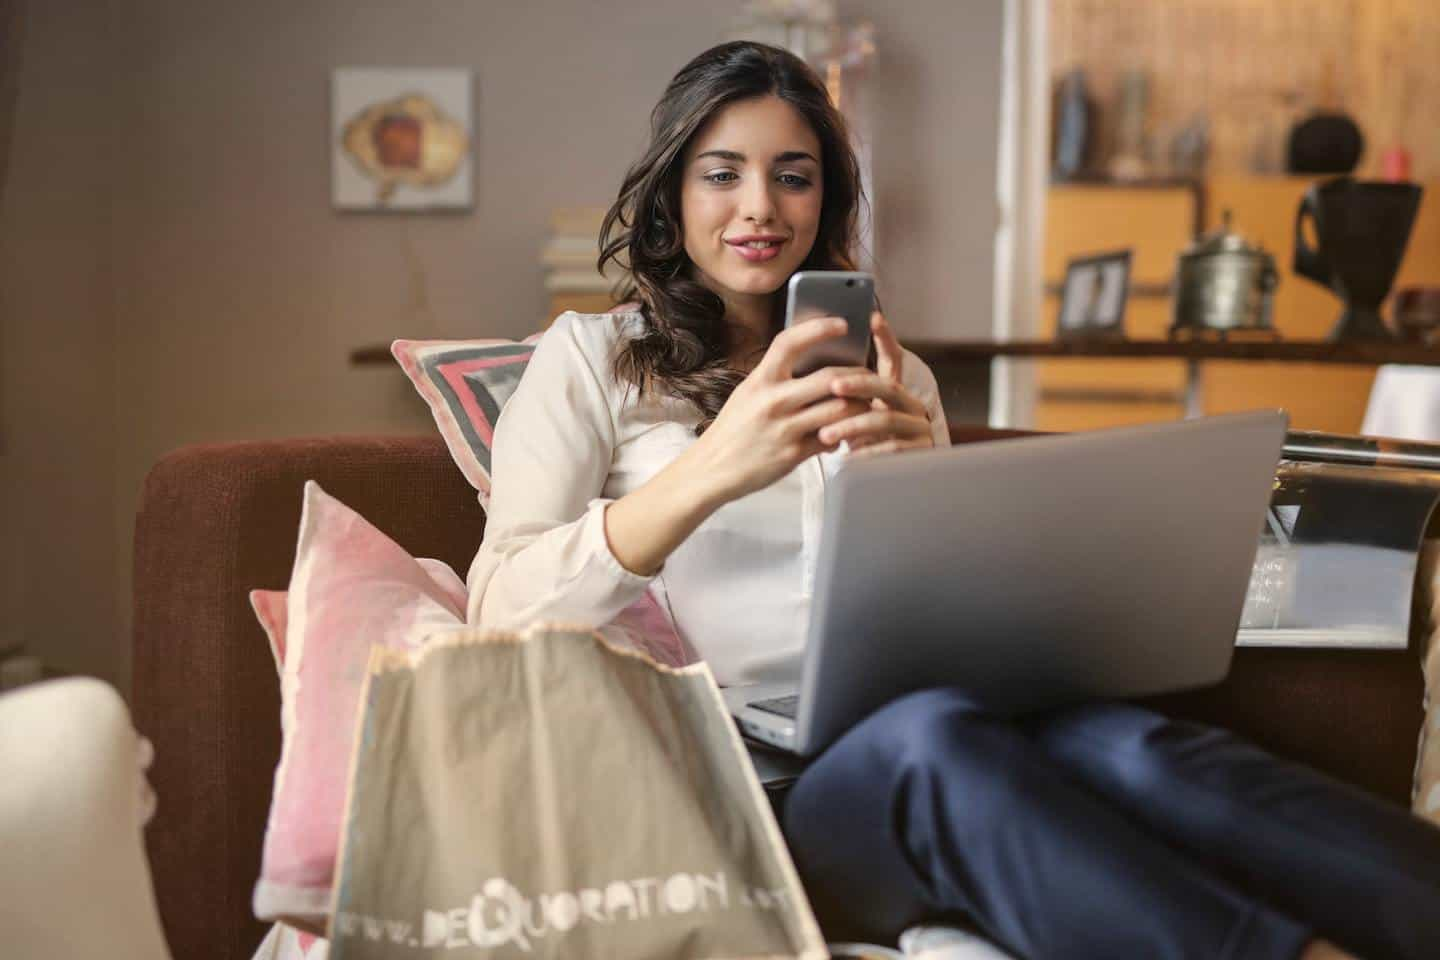 woman shopping on her smartphone